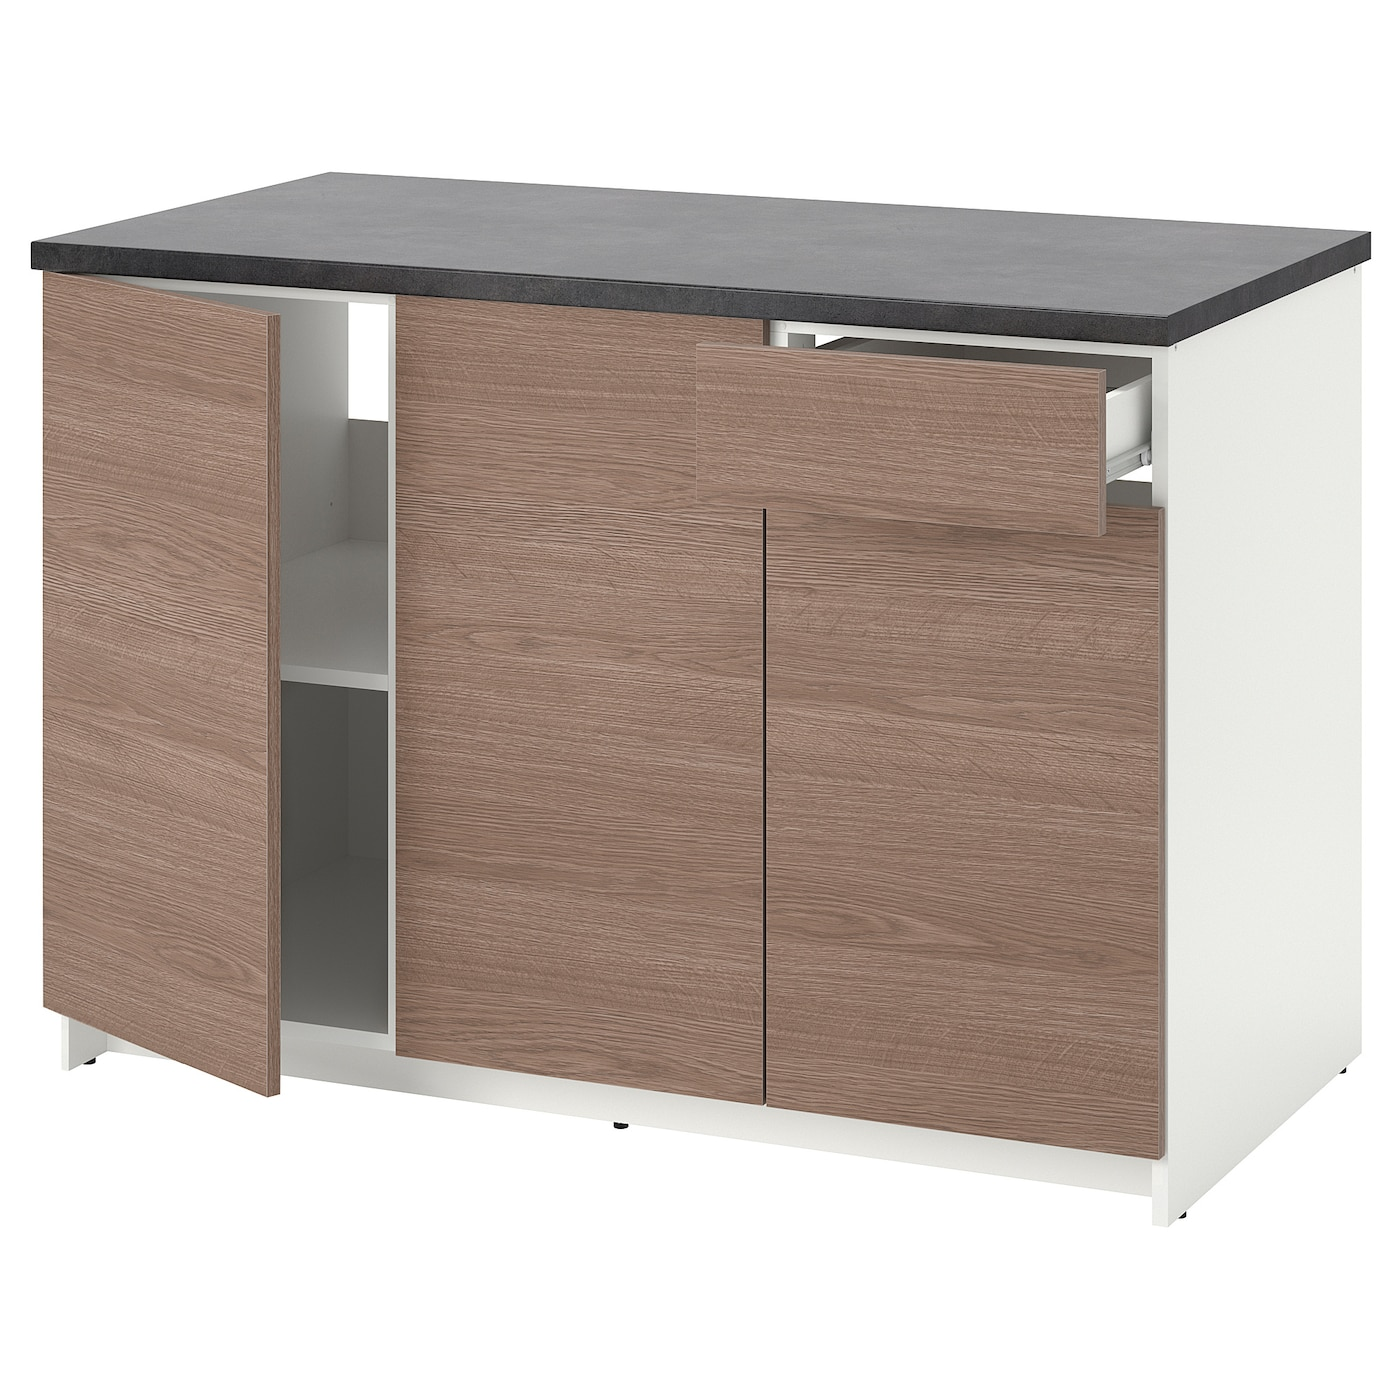 Knoxhult Base Cabinet With Doors And Drawer Wood Effect